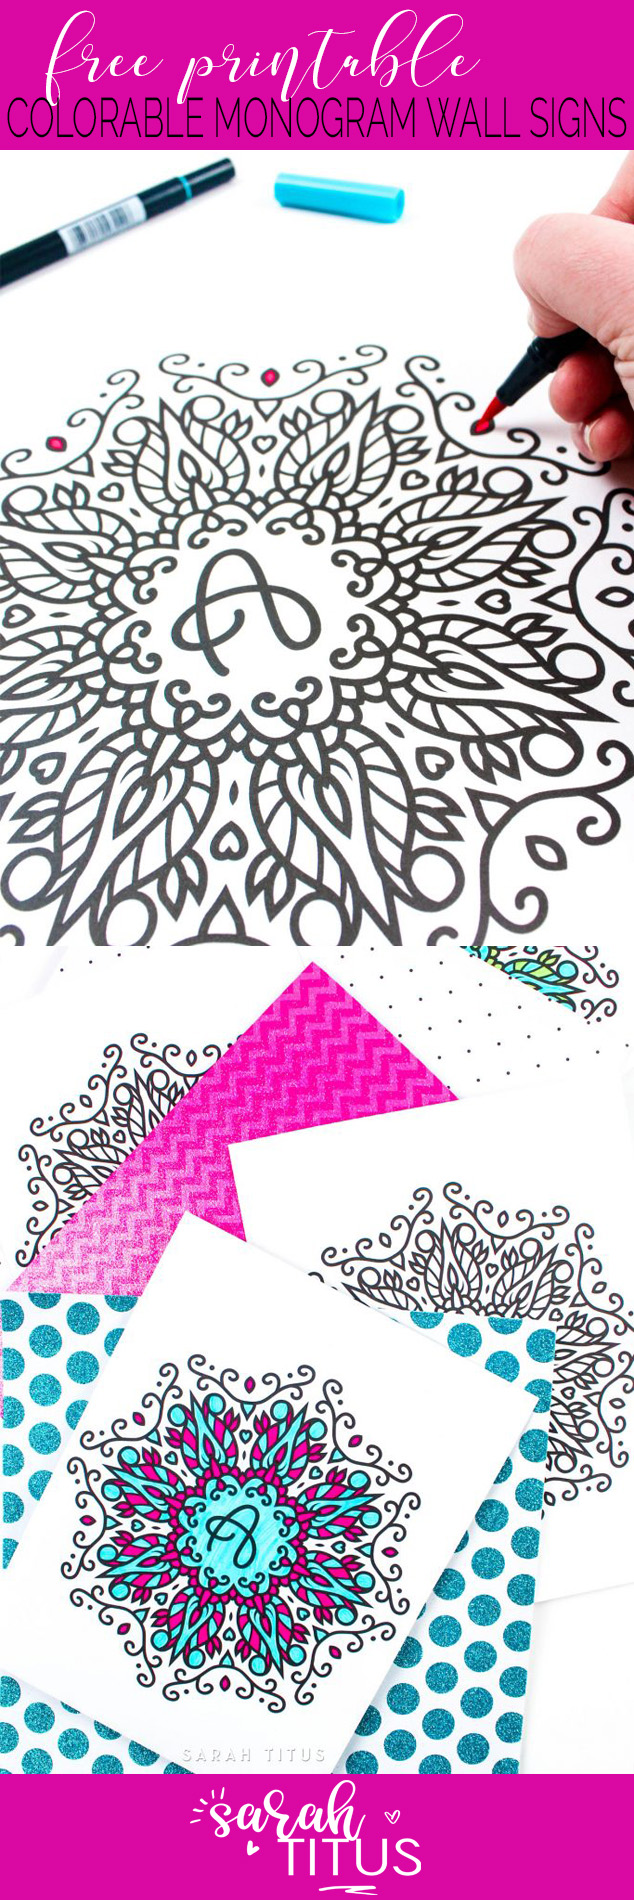 These Free Printable Coloring Monogram Wall Signs are so versatile, you can hang them on the walls of your home, office, or even better you can give them as a present for any occasion like: birthdays, weddings, holidays, etc! #colorable #coloringprintables #freeprintables #monogramwallart #wallartprintables